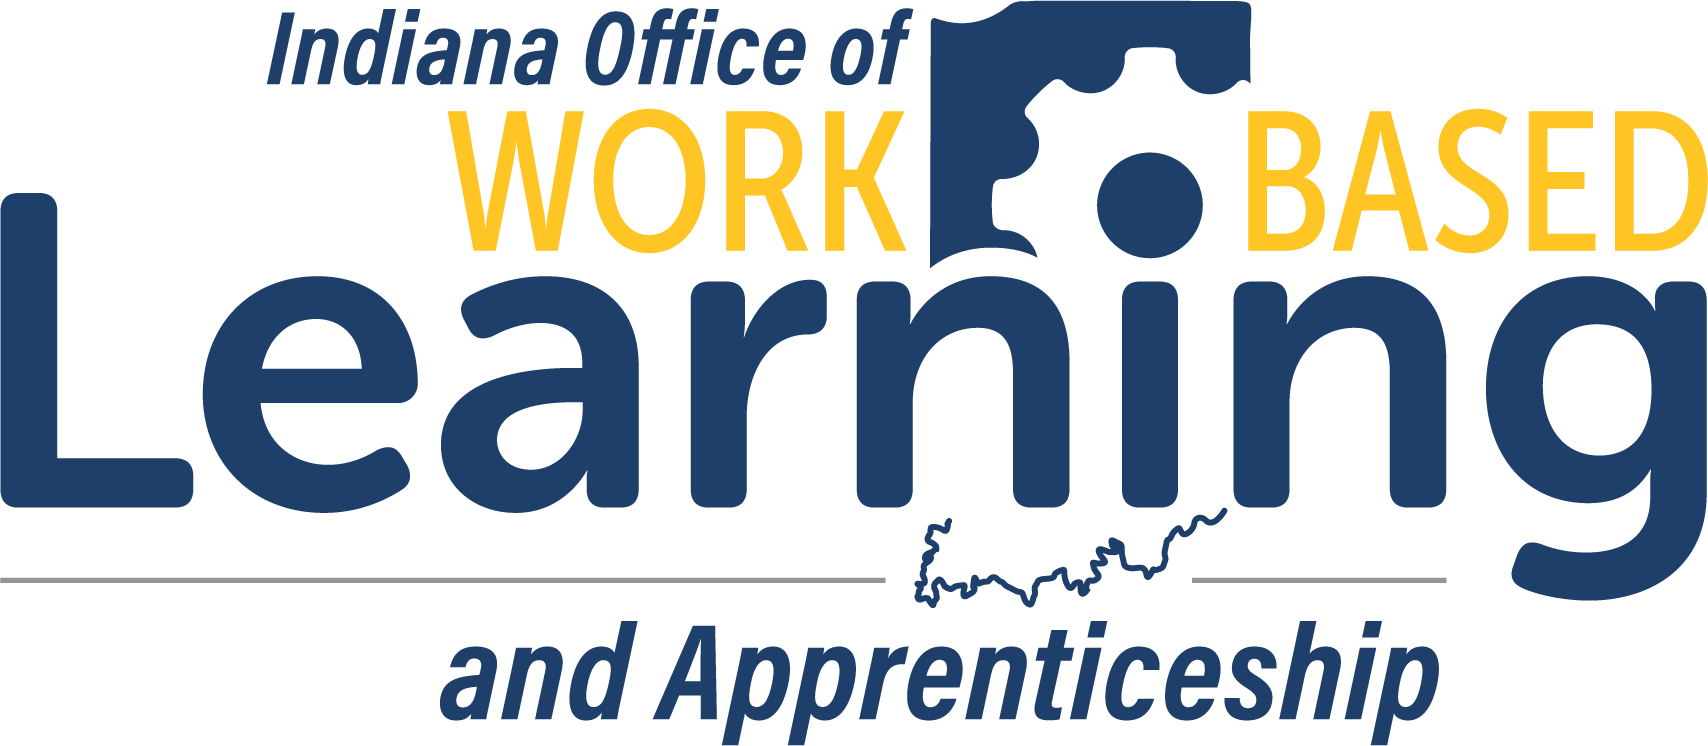 Indiana Office of Work-Based Learning & Apprenticeship Logo